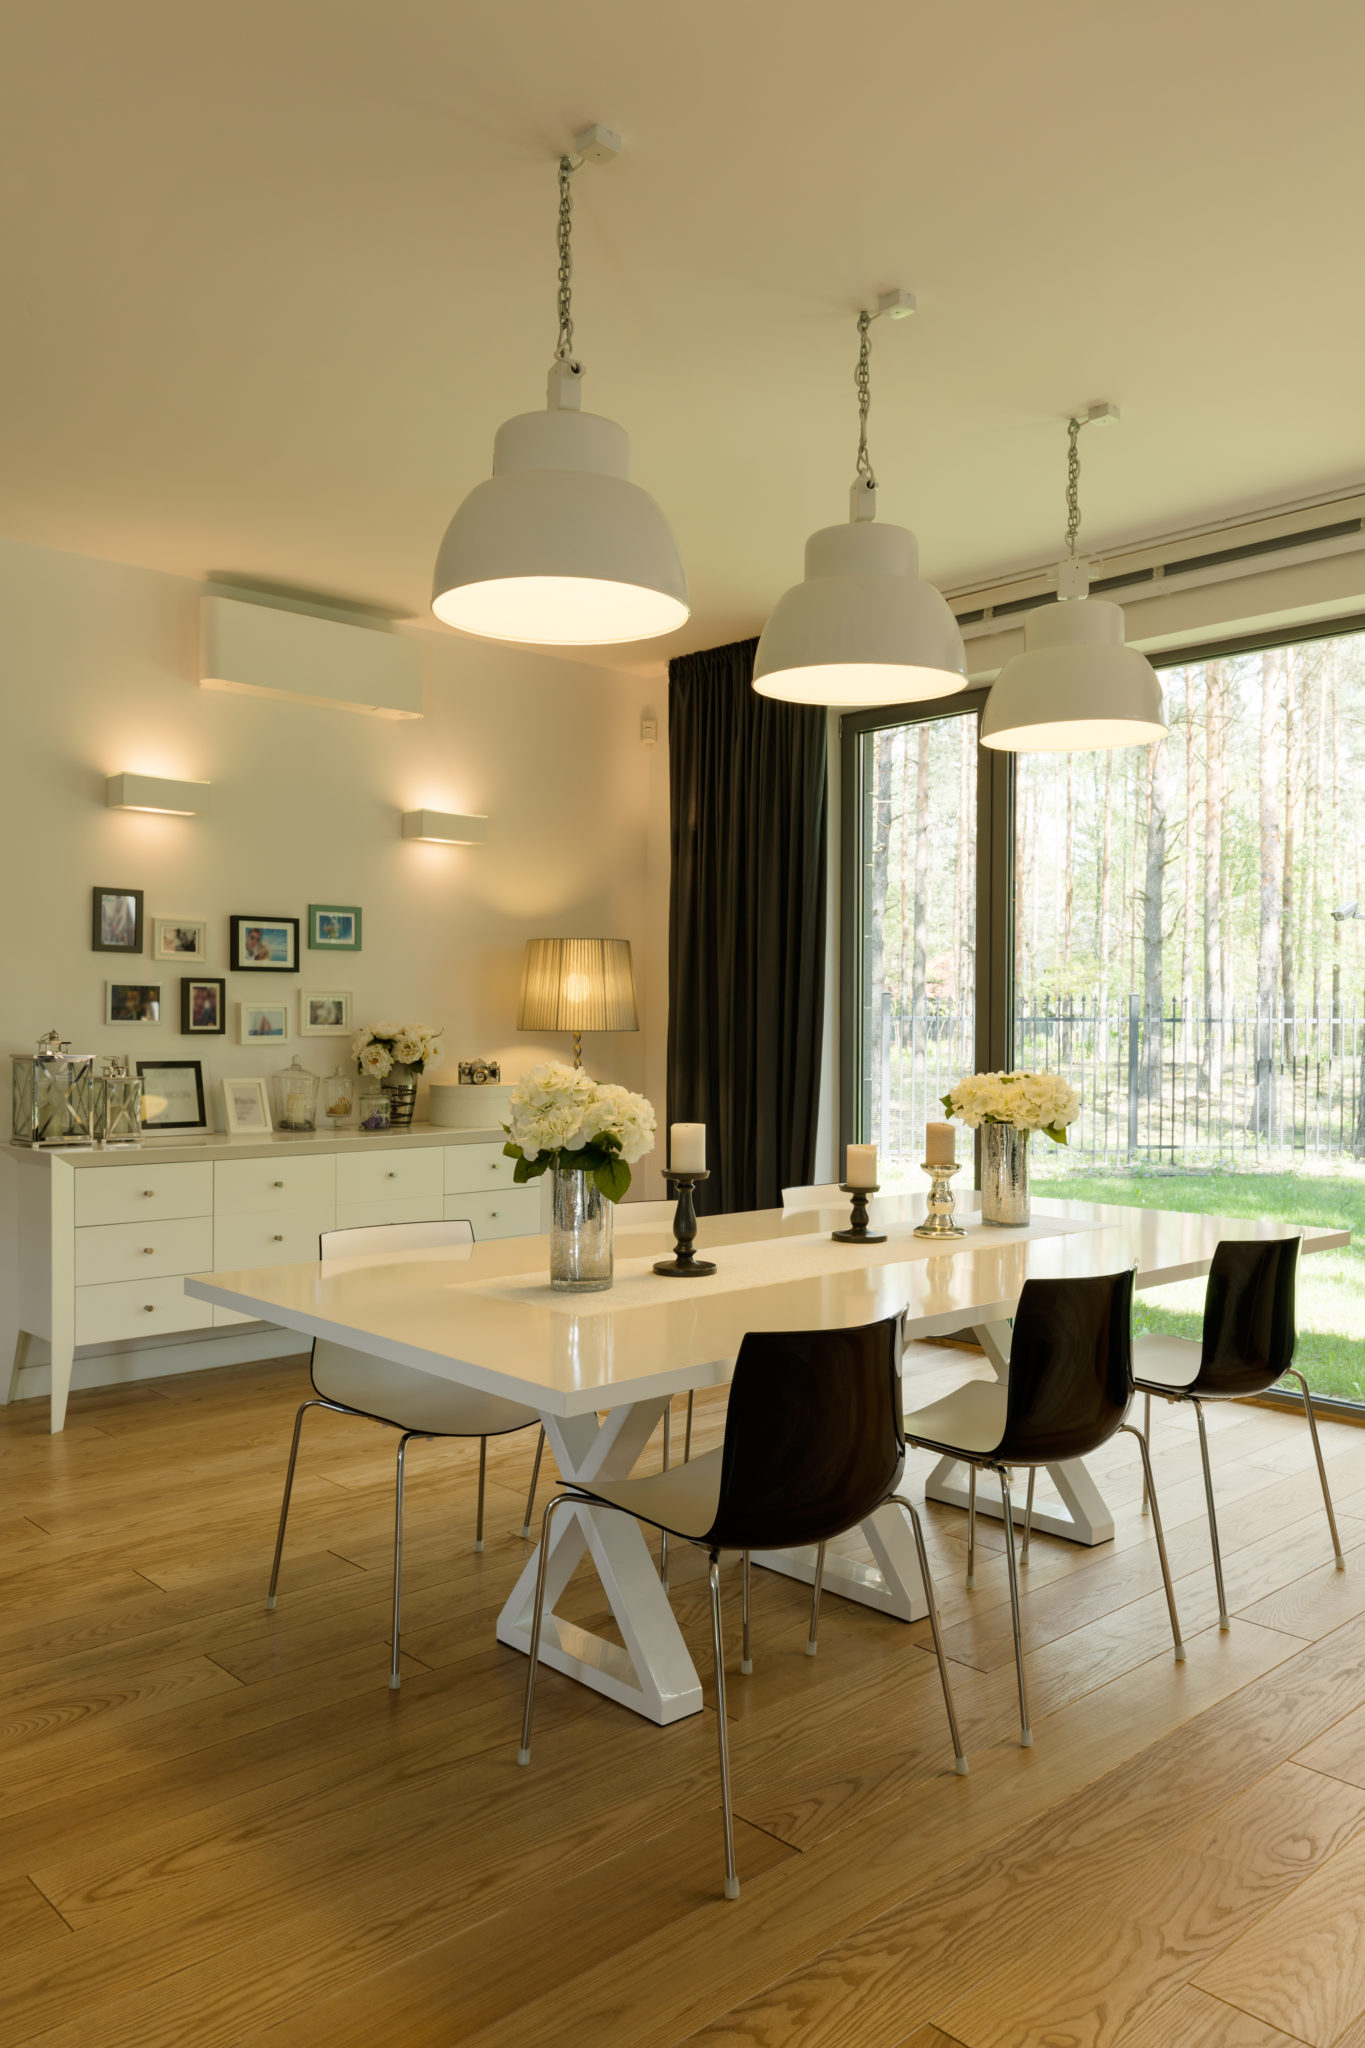 Spacious light dining room with wooden parquet and table